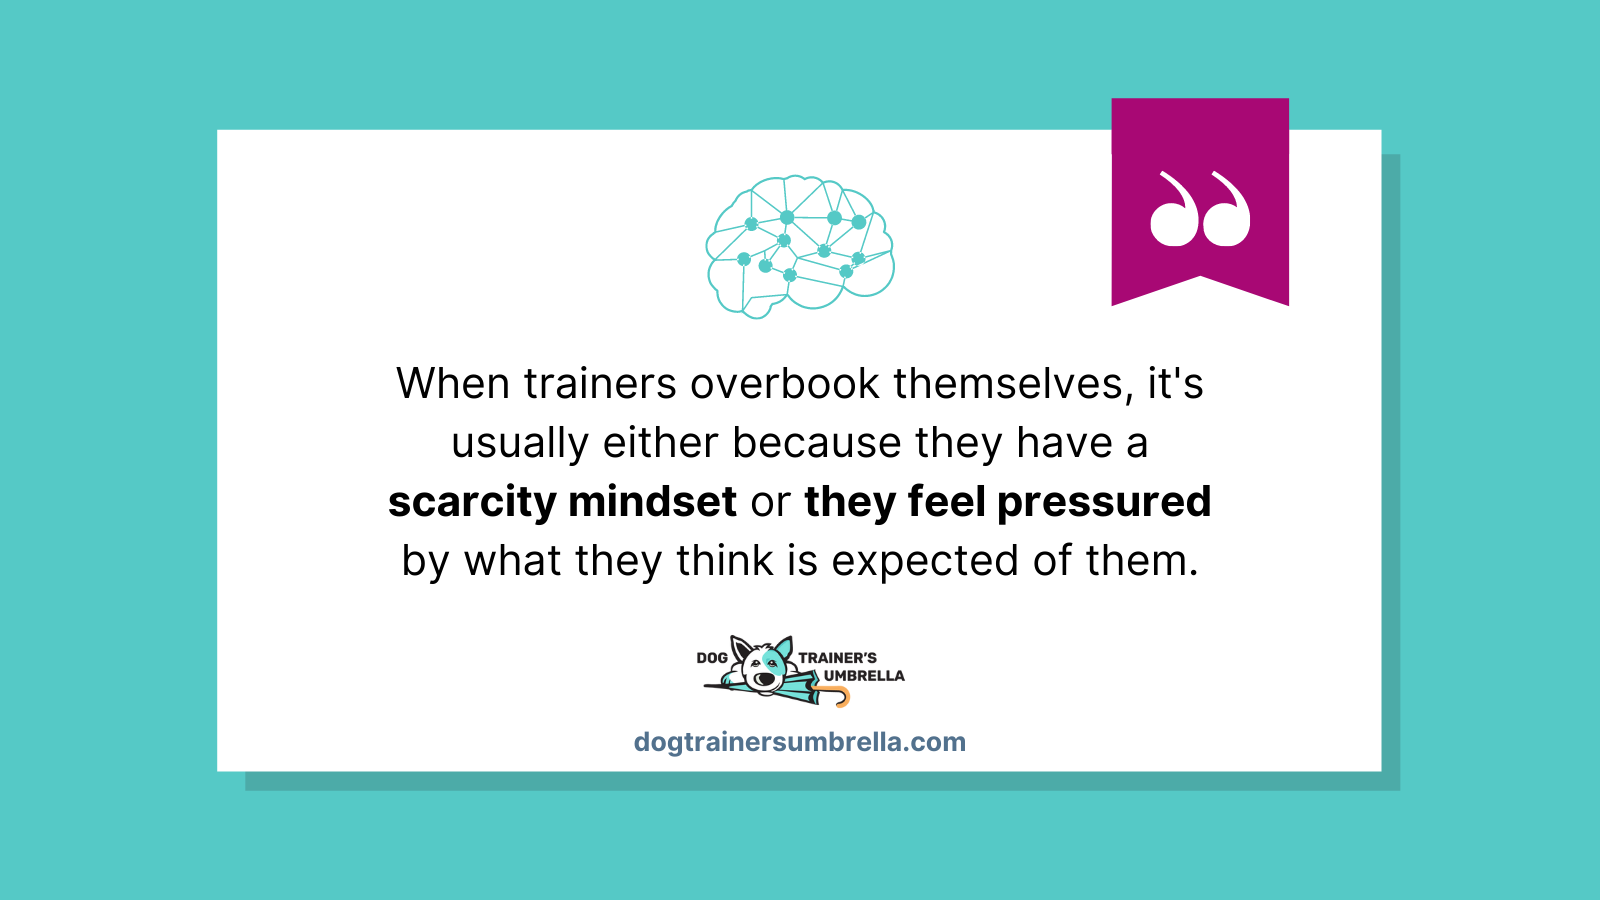 Trainers who are booked solid overbook themselves because of either a scarcity mindset or because they feel pressured.